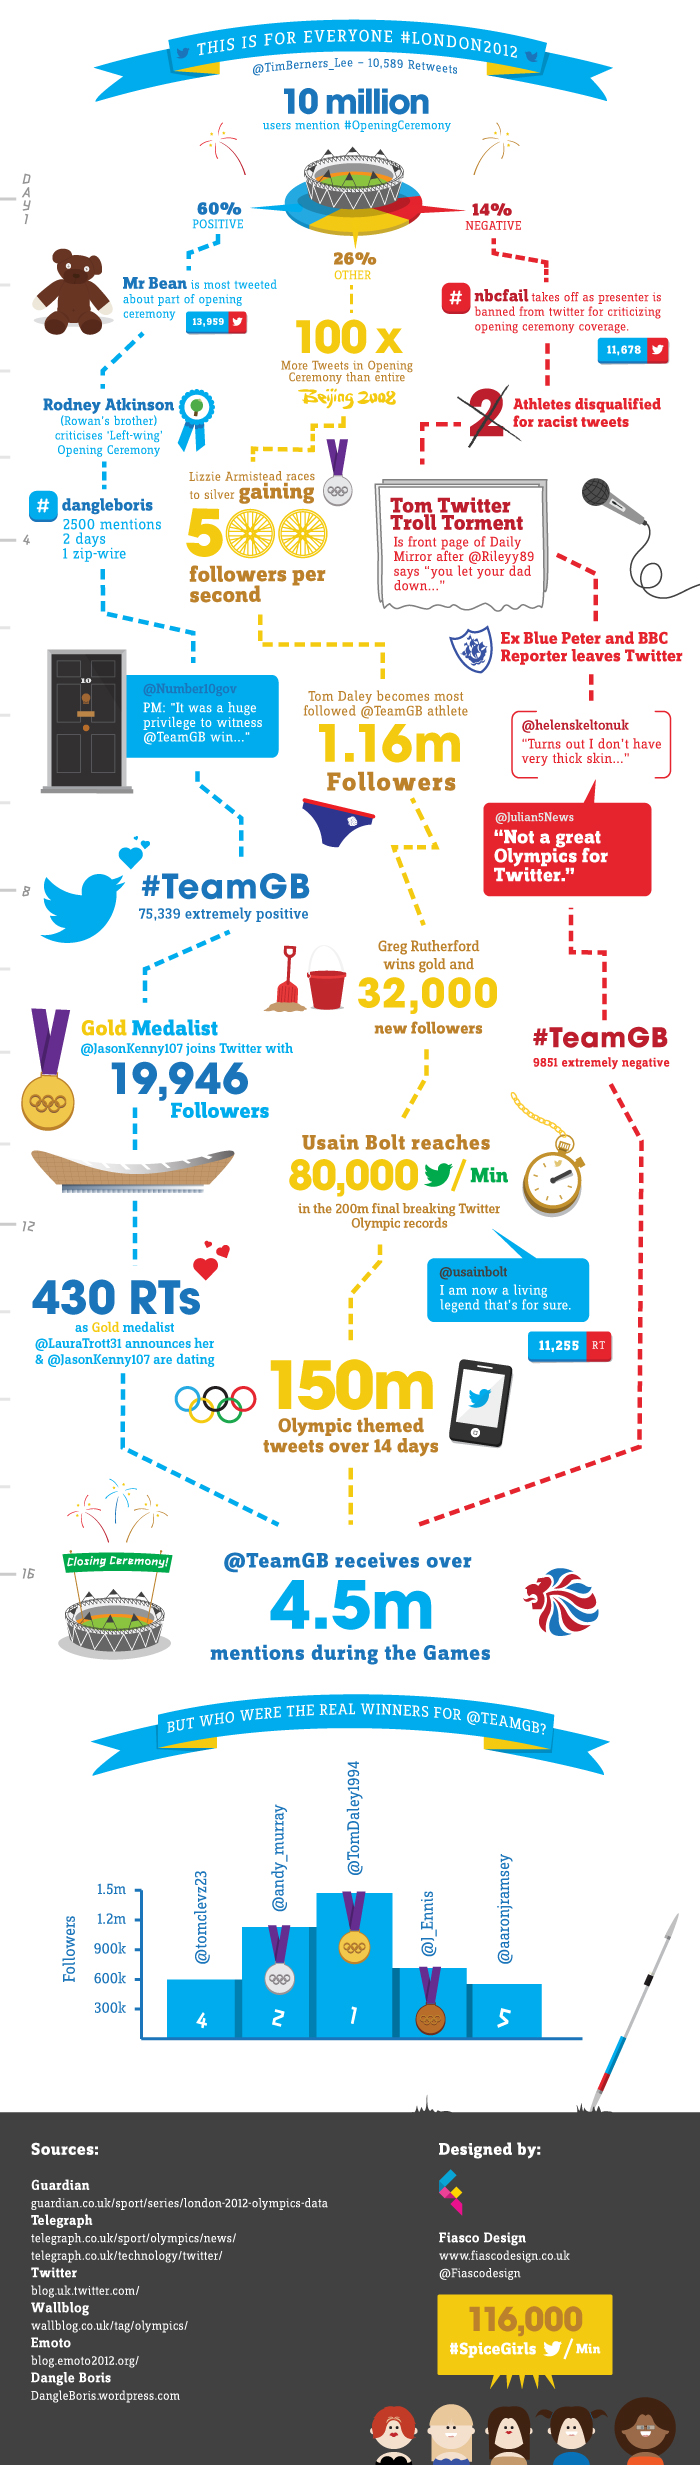 How Was Twitter Used During The Olympics?